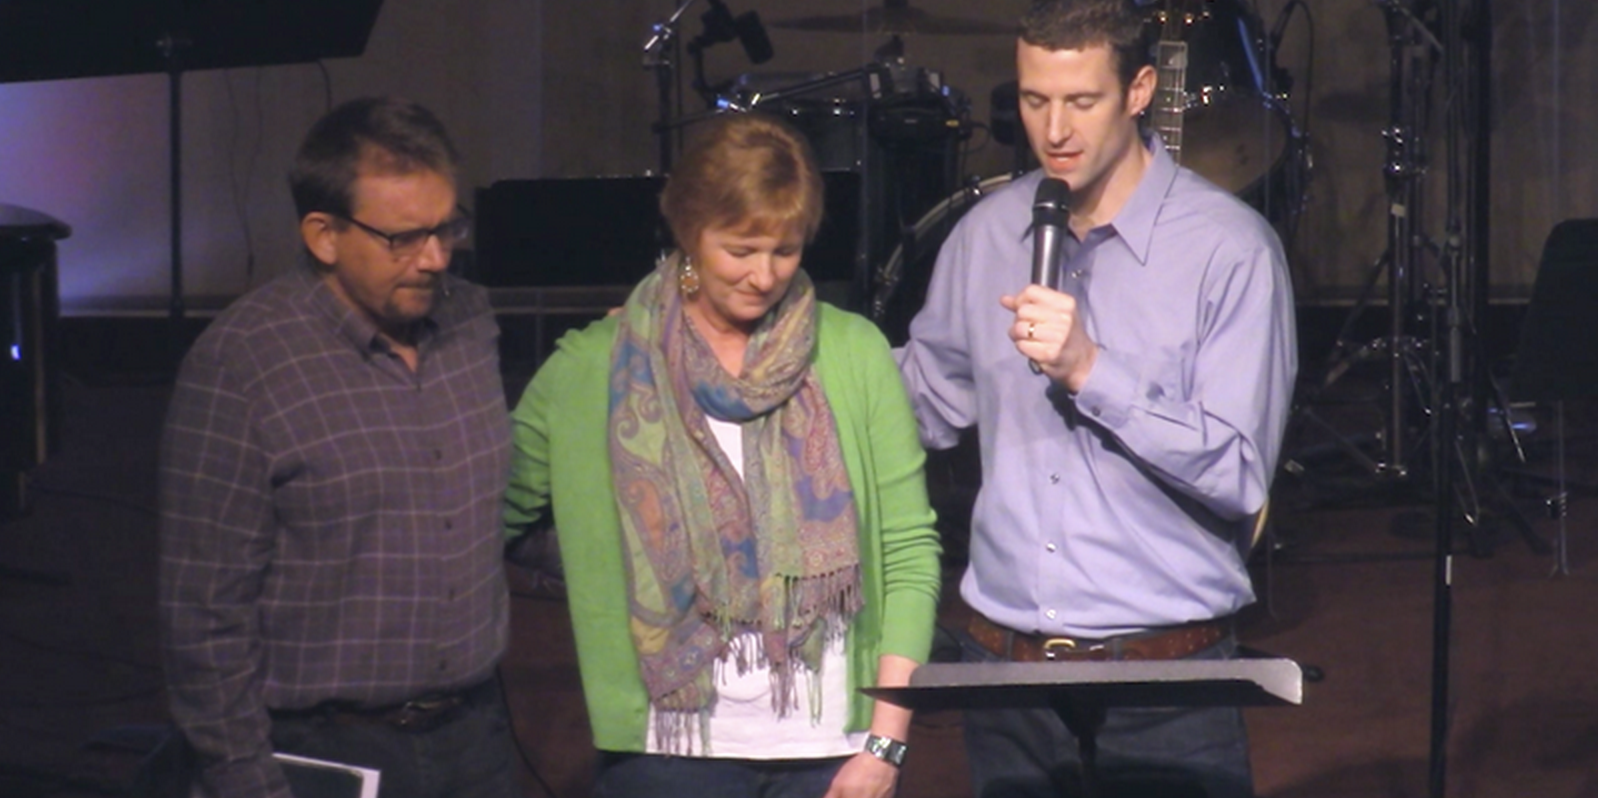 We were able to pray for Mark and Vivian and their ministries.